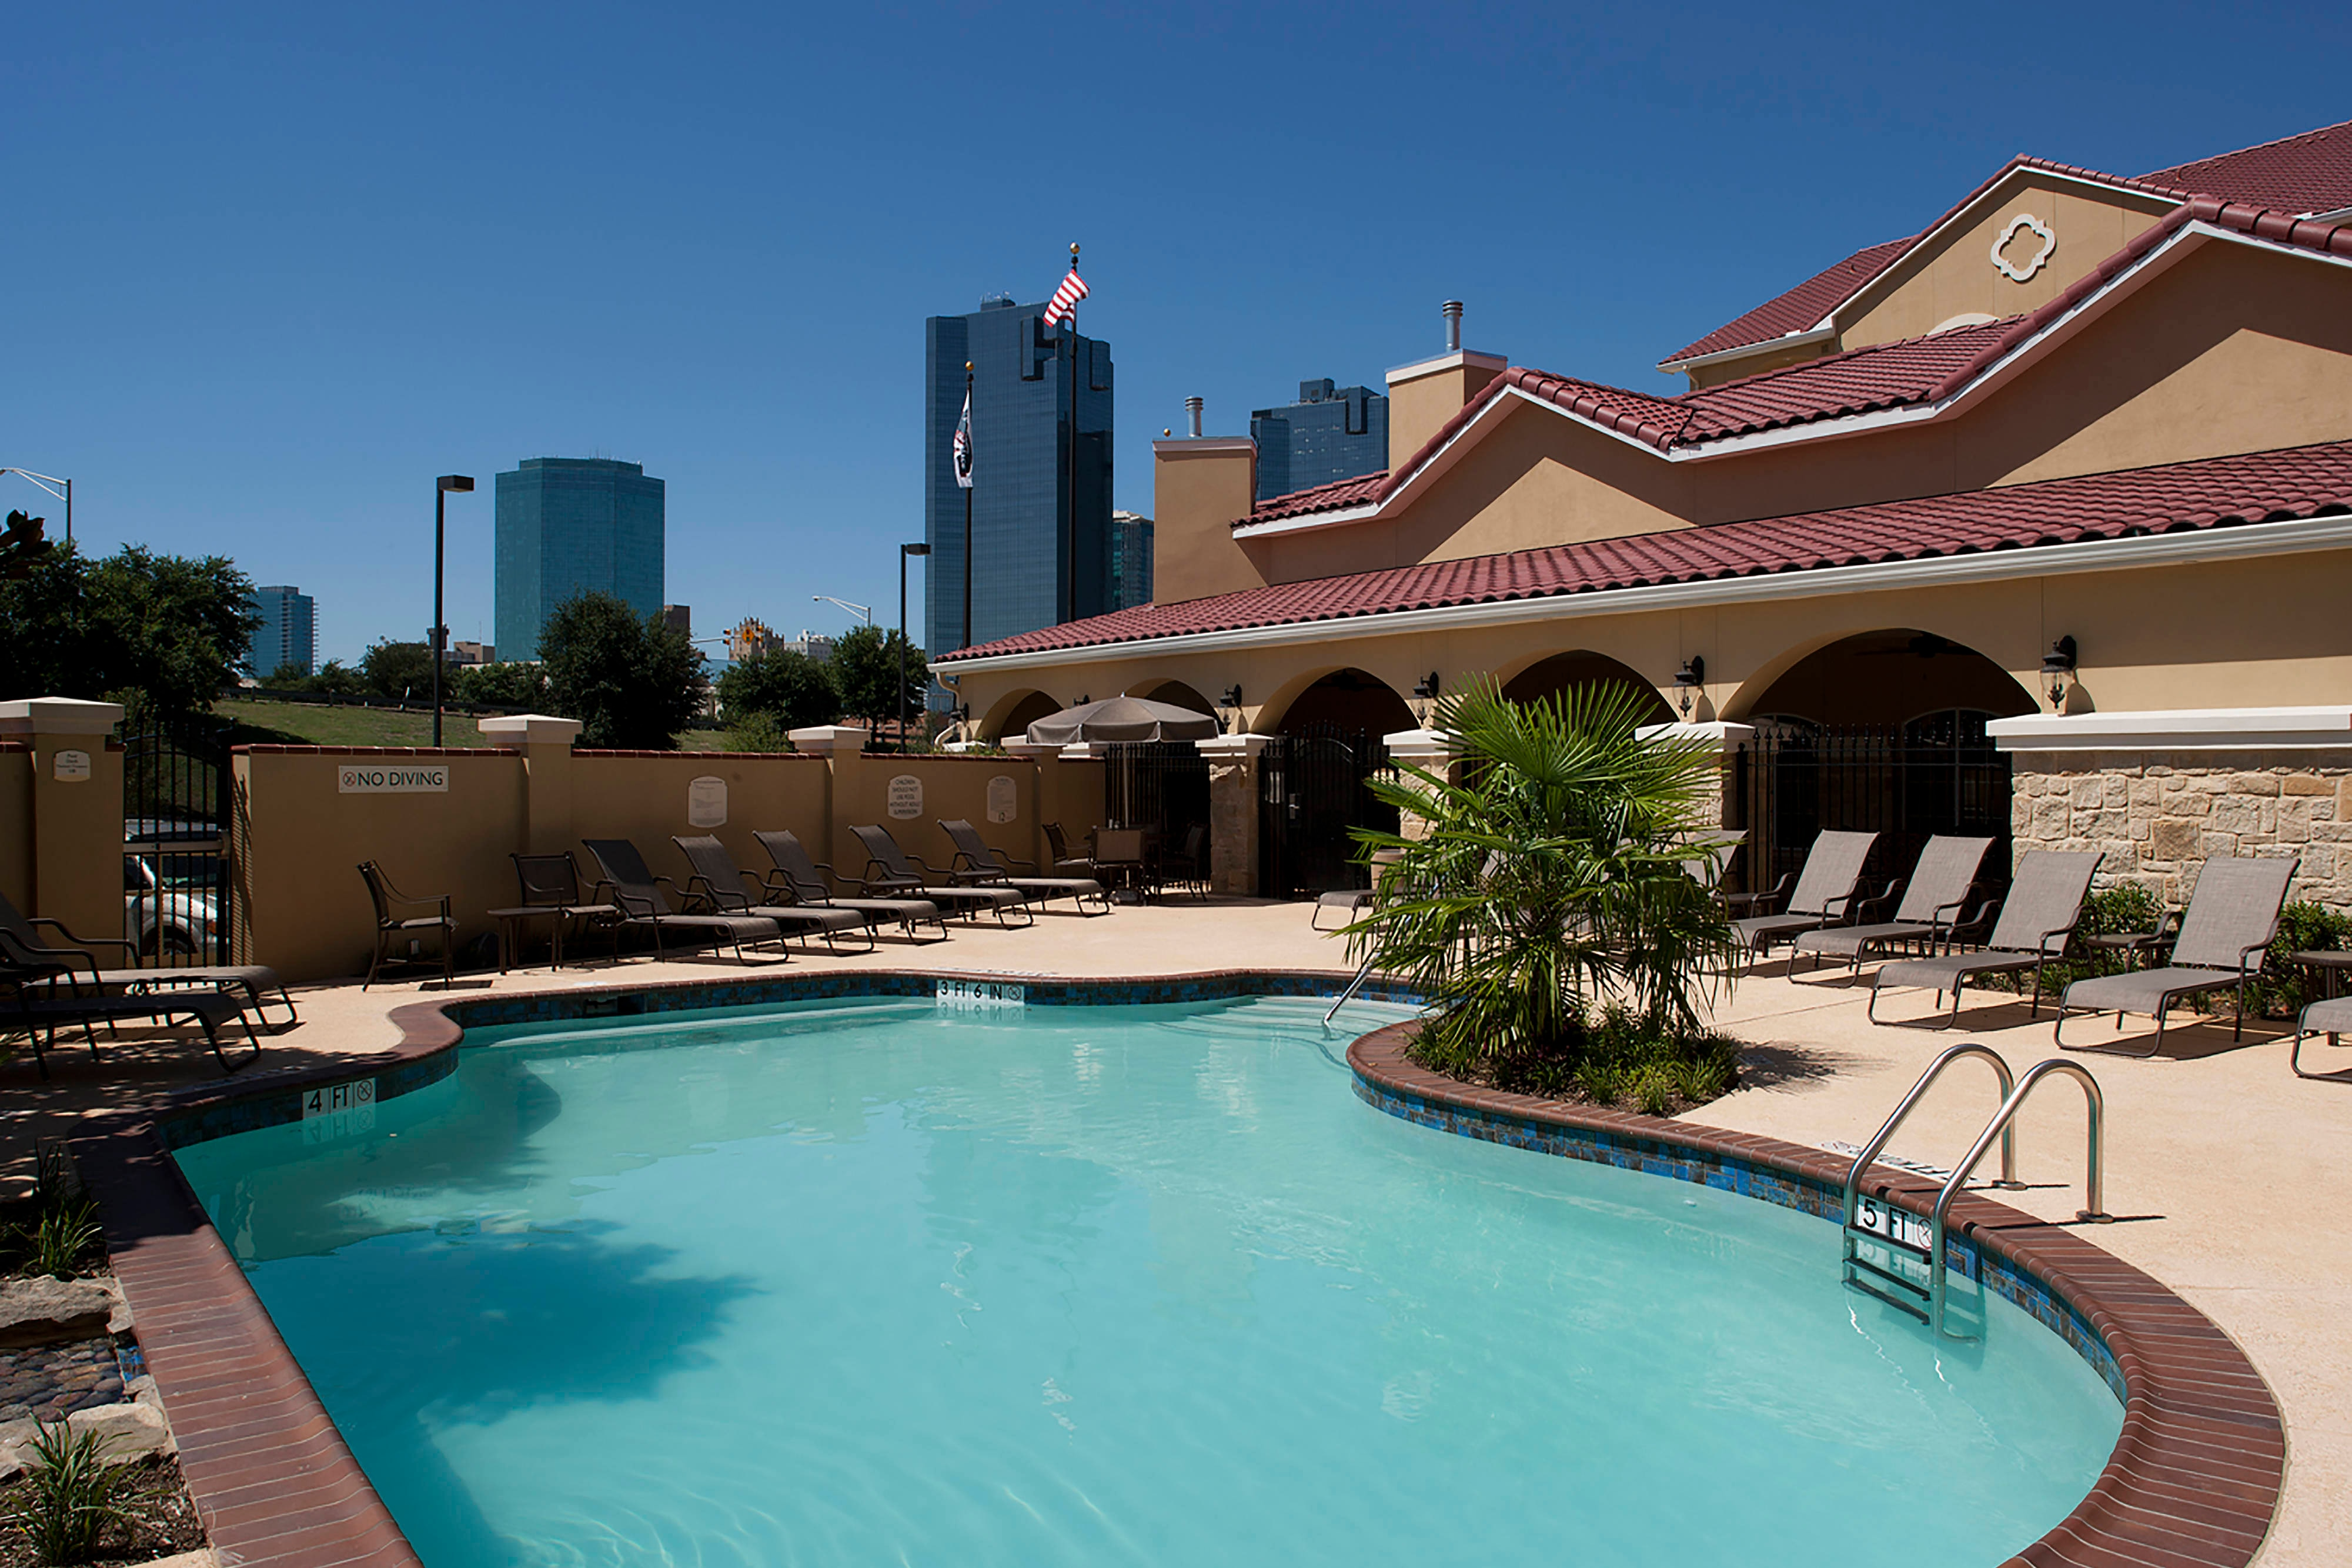 Pool - Ft. Worth TownePlace Suites